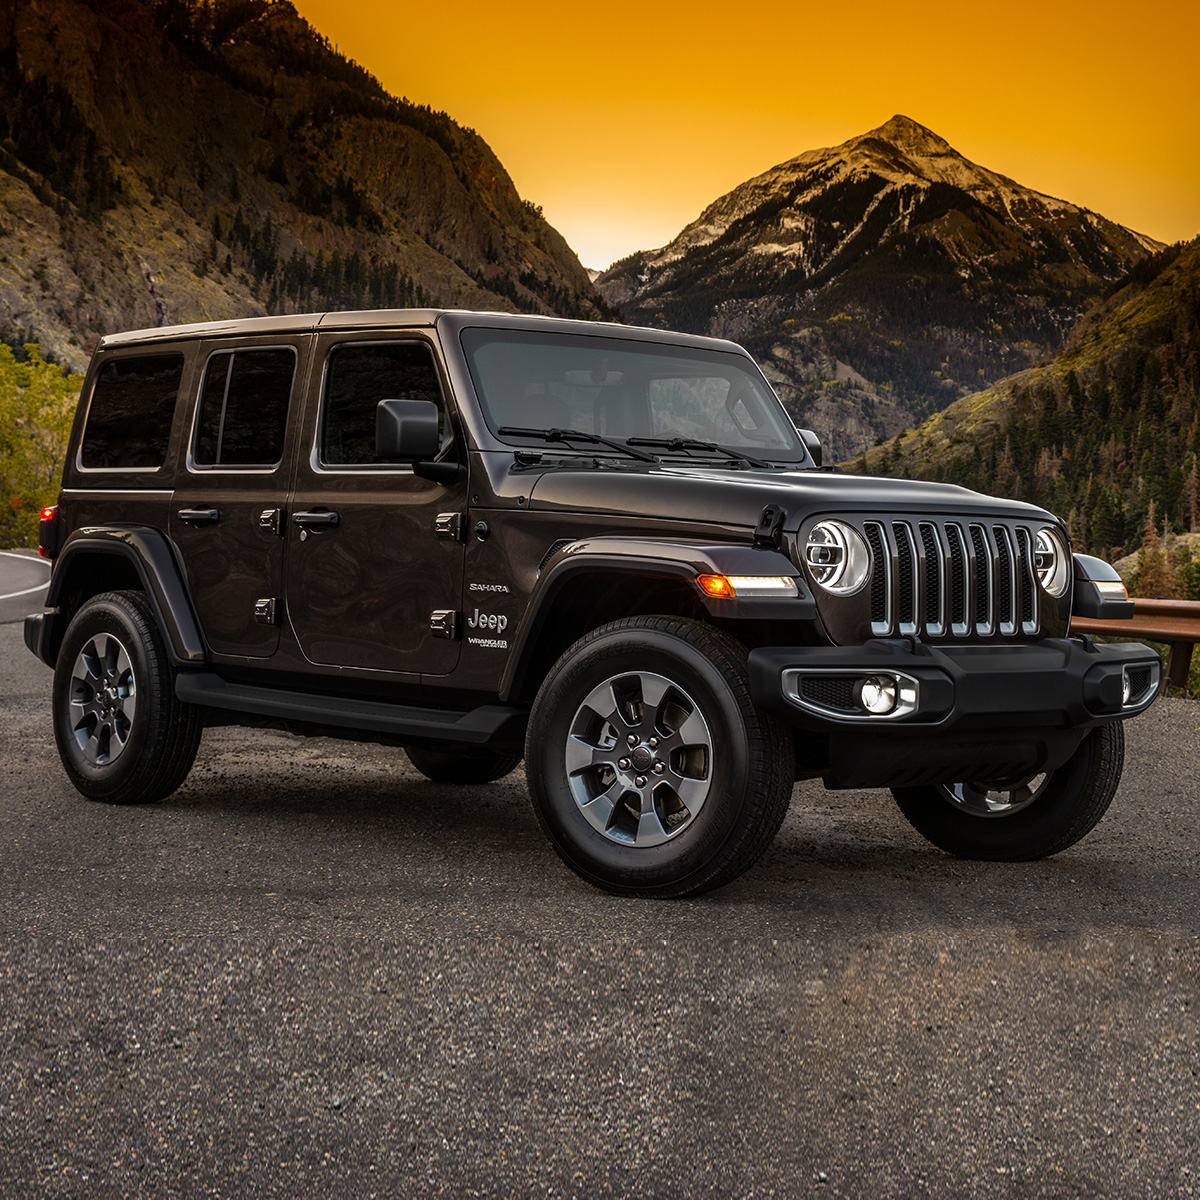 side view of jeep wrangler parked on asphalt and mountains in the background